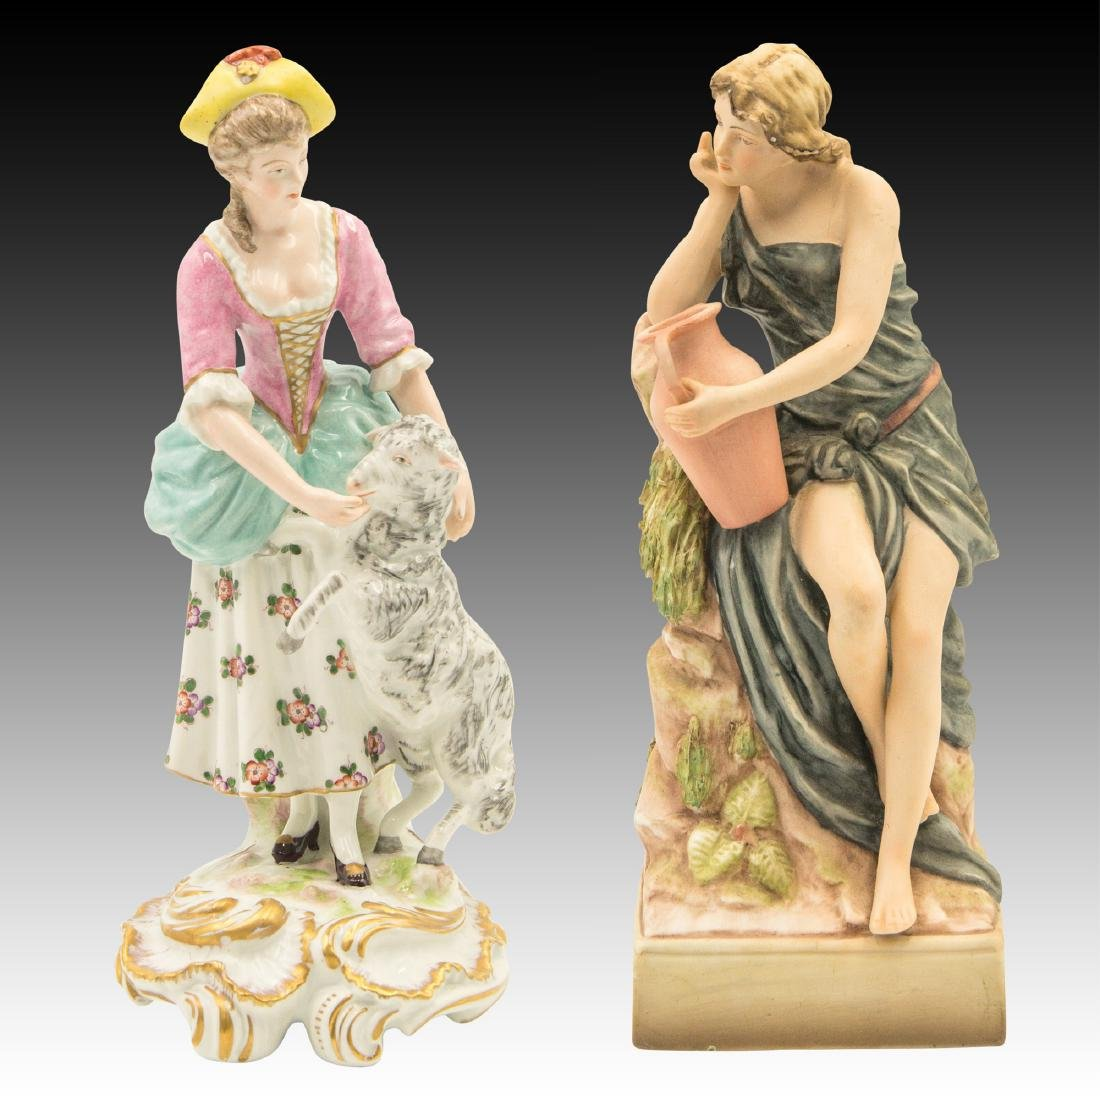 Group of 2 Kalk German Porcelain Figurines